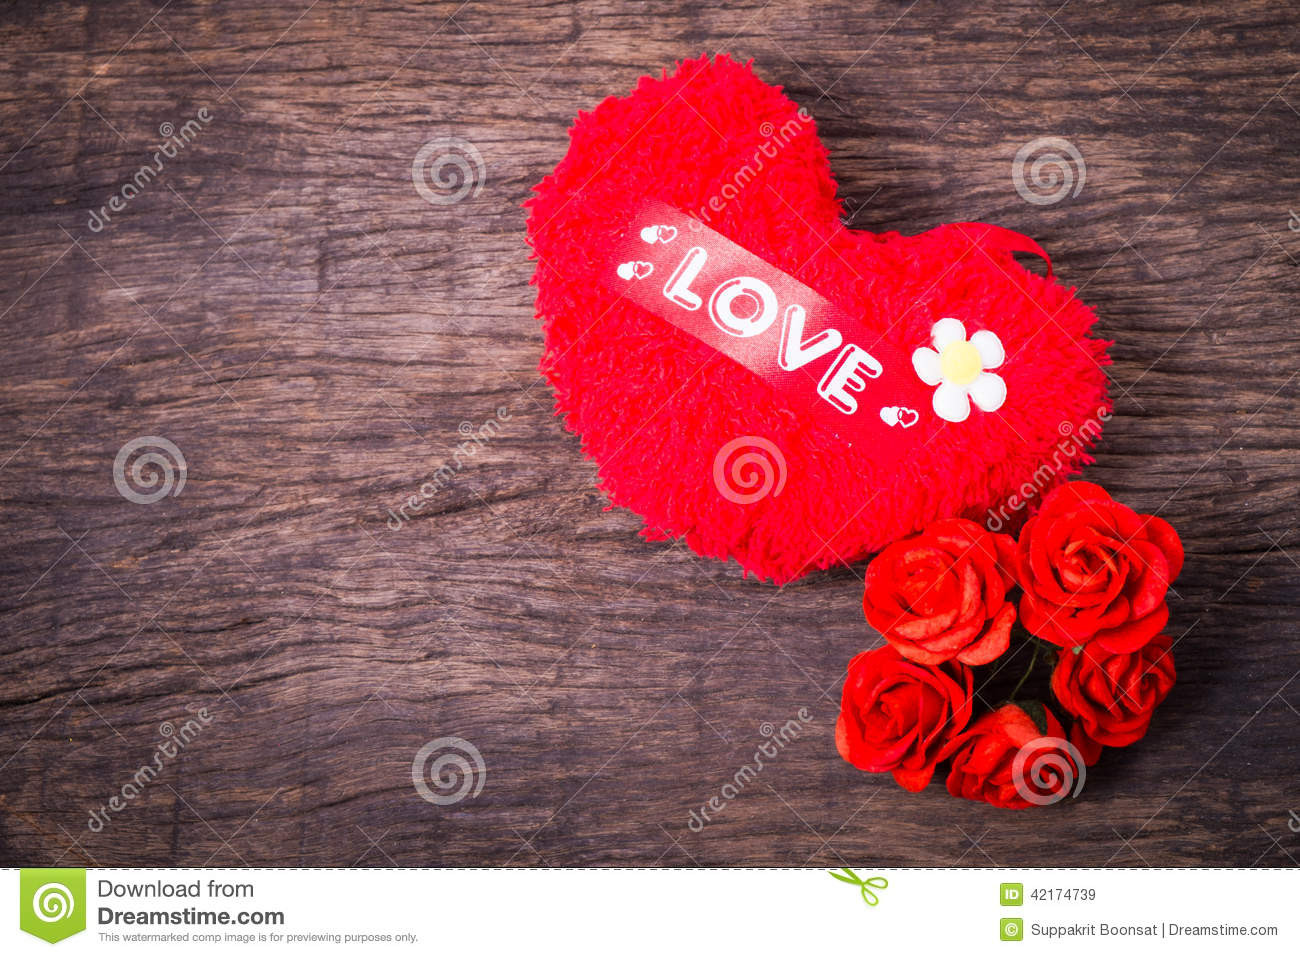 Red Heart with Love Elegant Red Heart with Love Word and Roses Royalty Free Stock Of Red Heart with Love Fresh Love Heart Impremedia